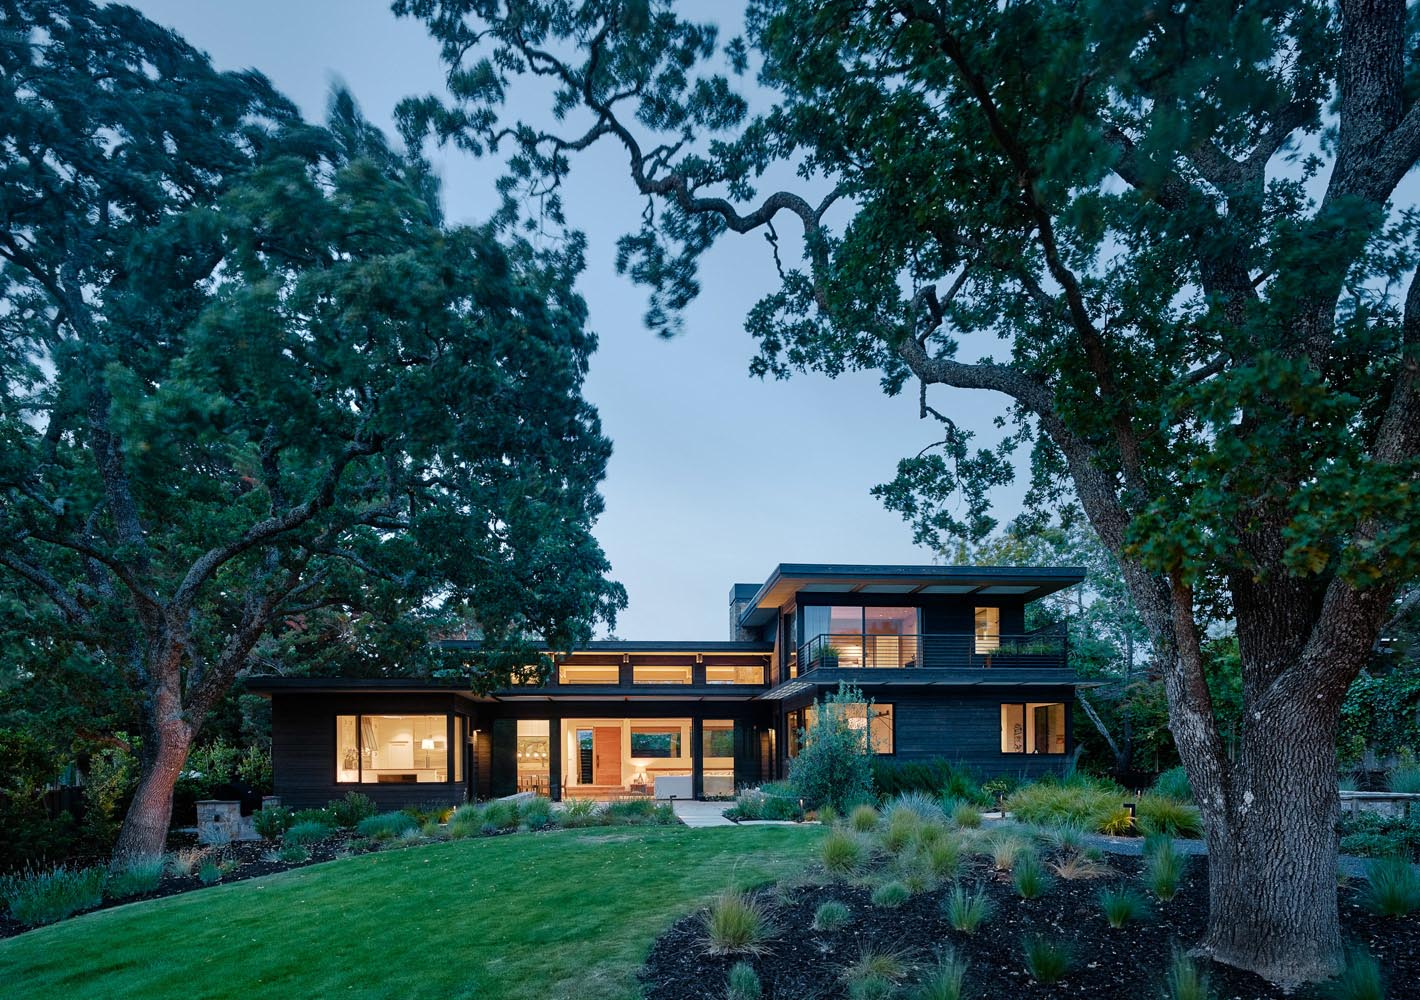 The Dark Exterior Of This House In California Hides A Bright Interior